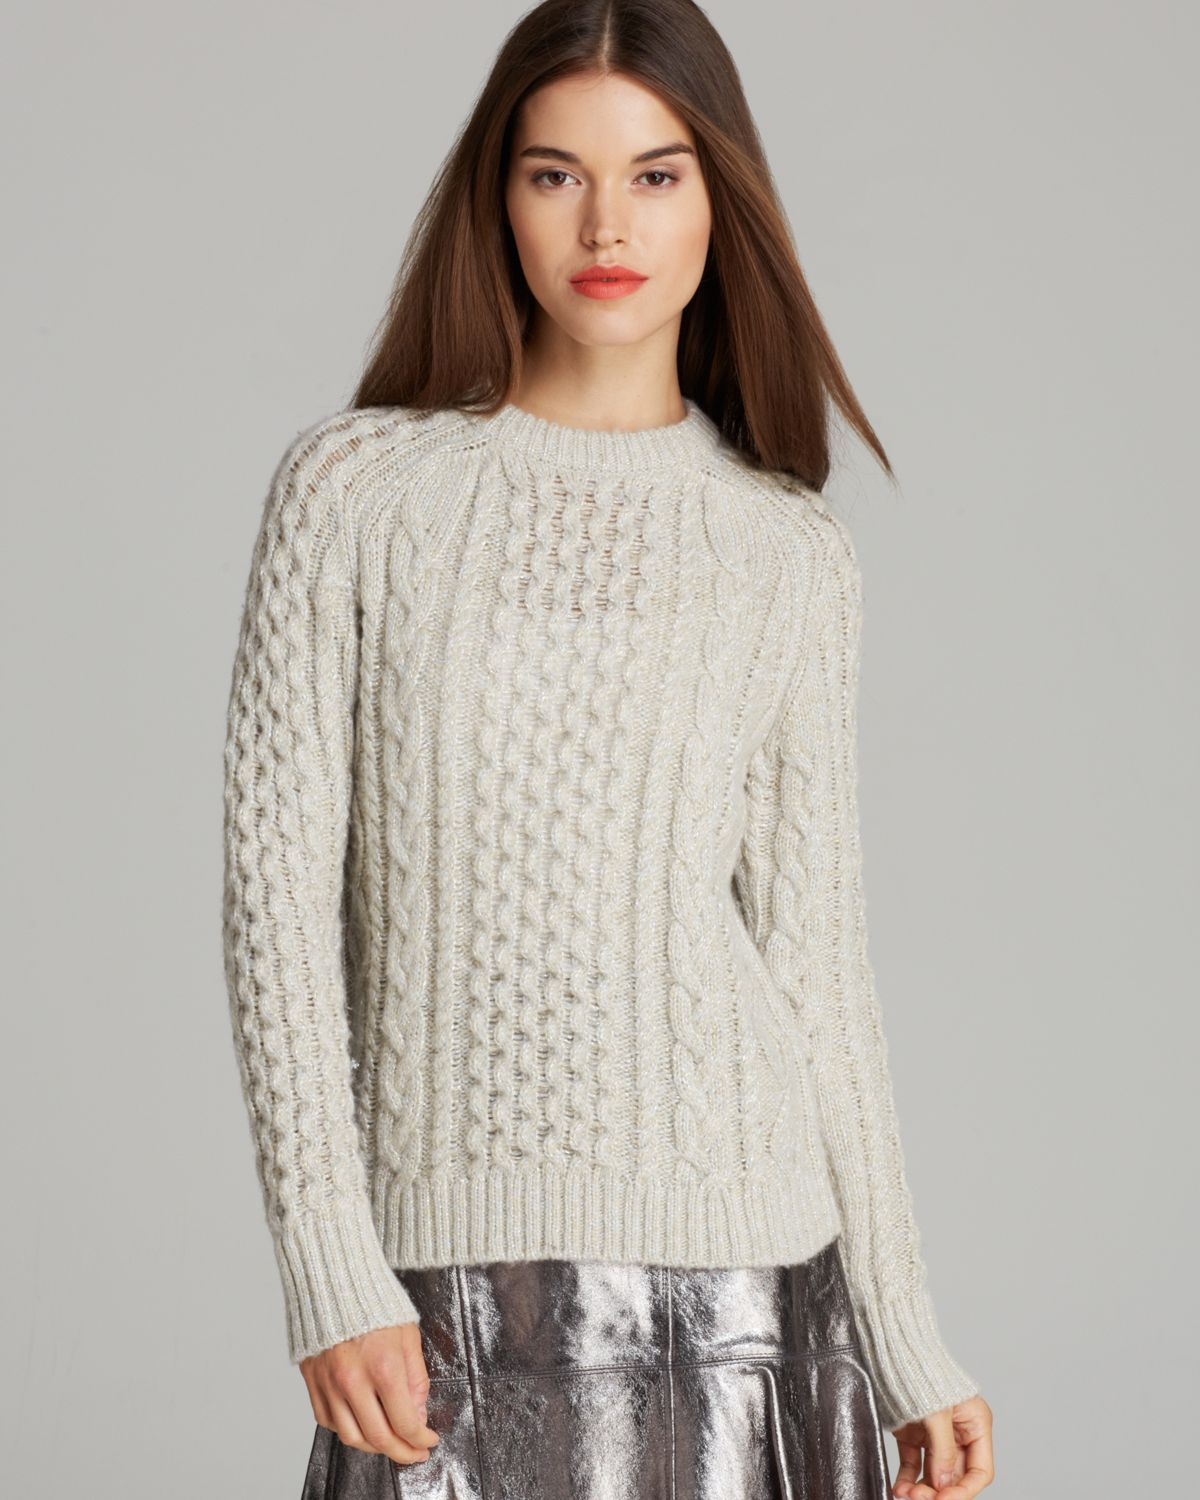 MARC BY MARC JACOBS Sweater - Sparkle Cable | Bloomingdale's